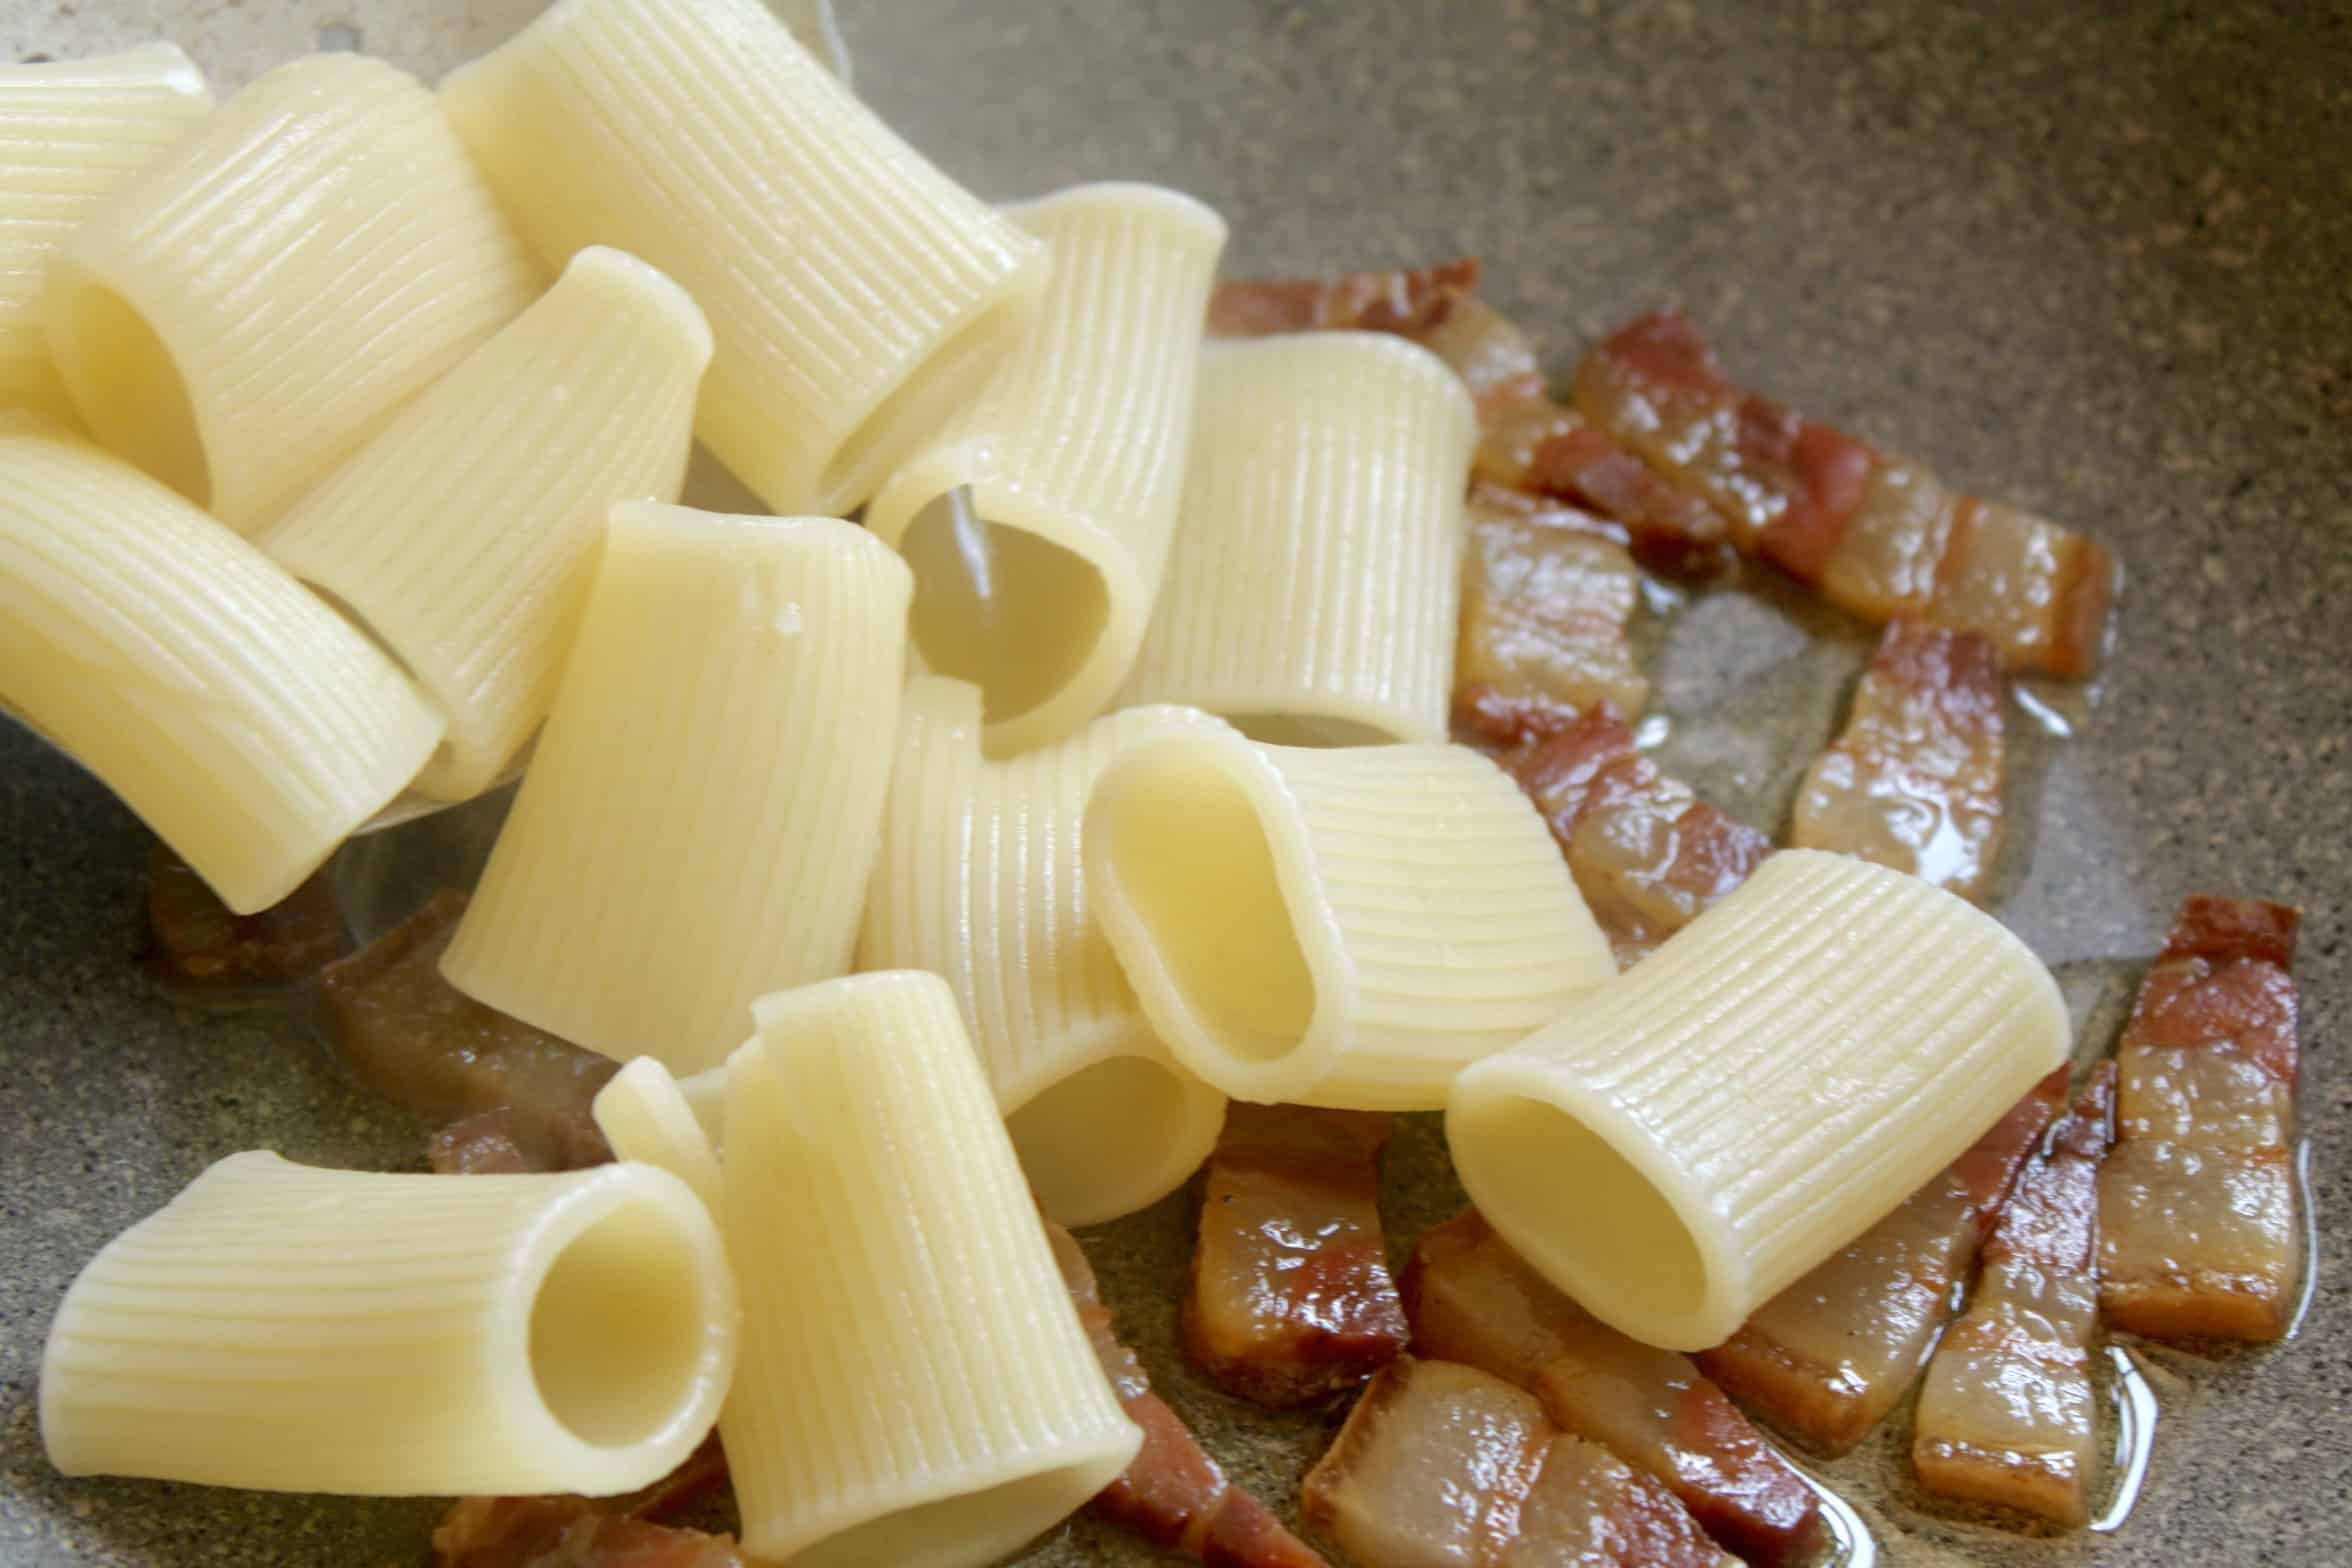 adding rigatoni to the other pan